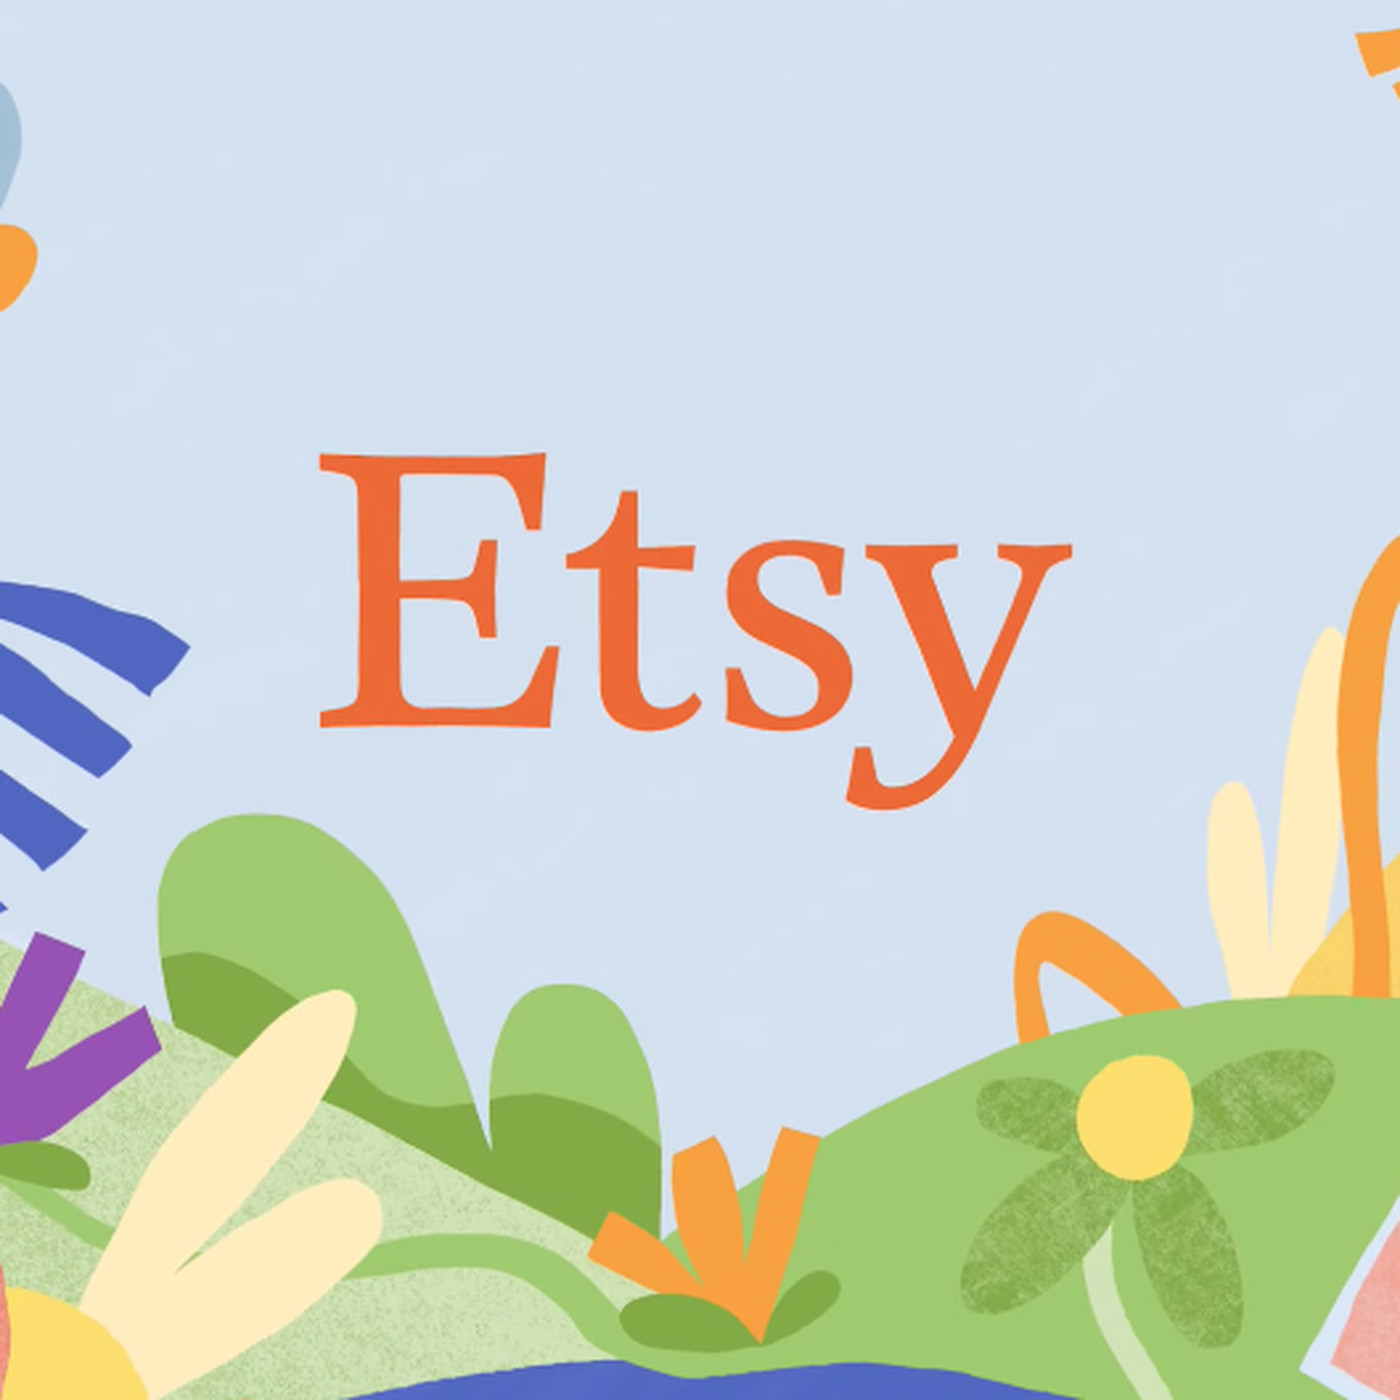 ffa0a1678ecc8 Etsy sellers aren't happy with the platform pushing them to offer ...